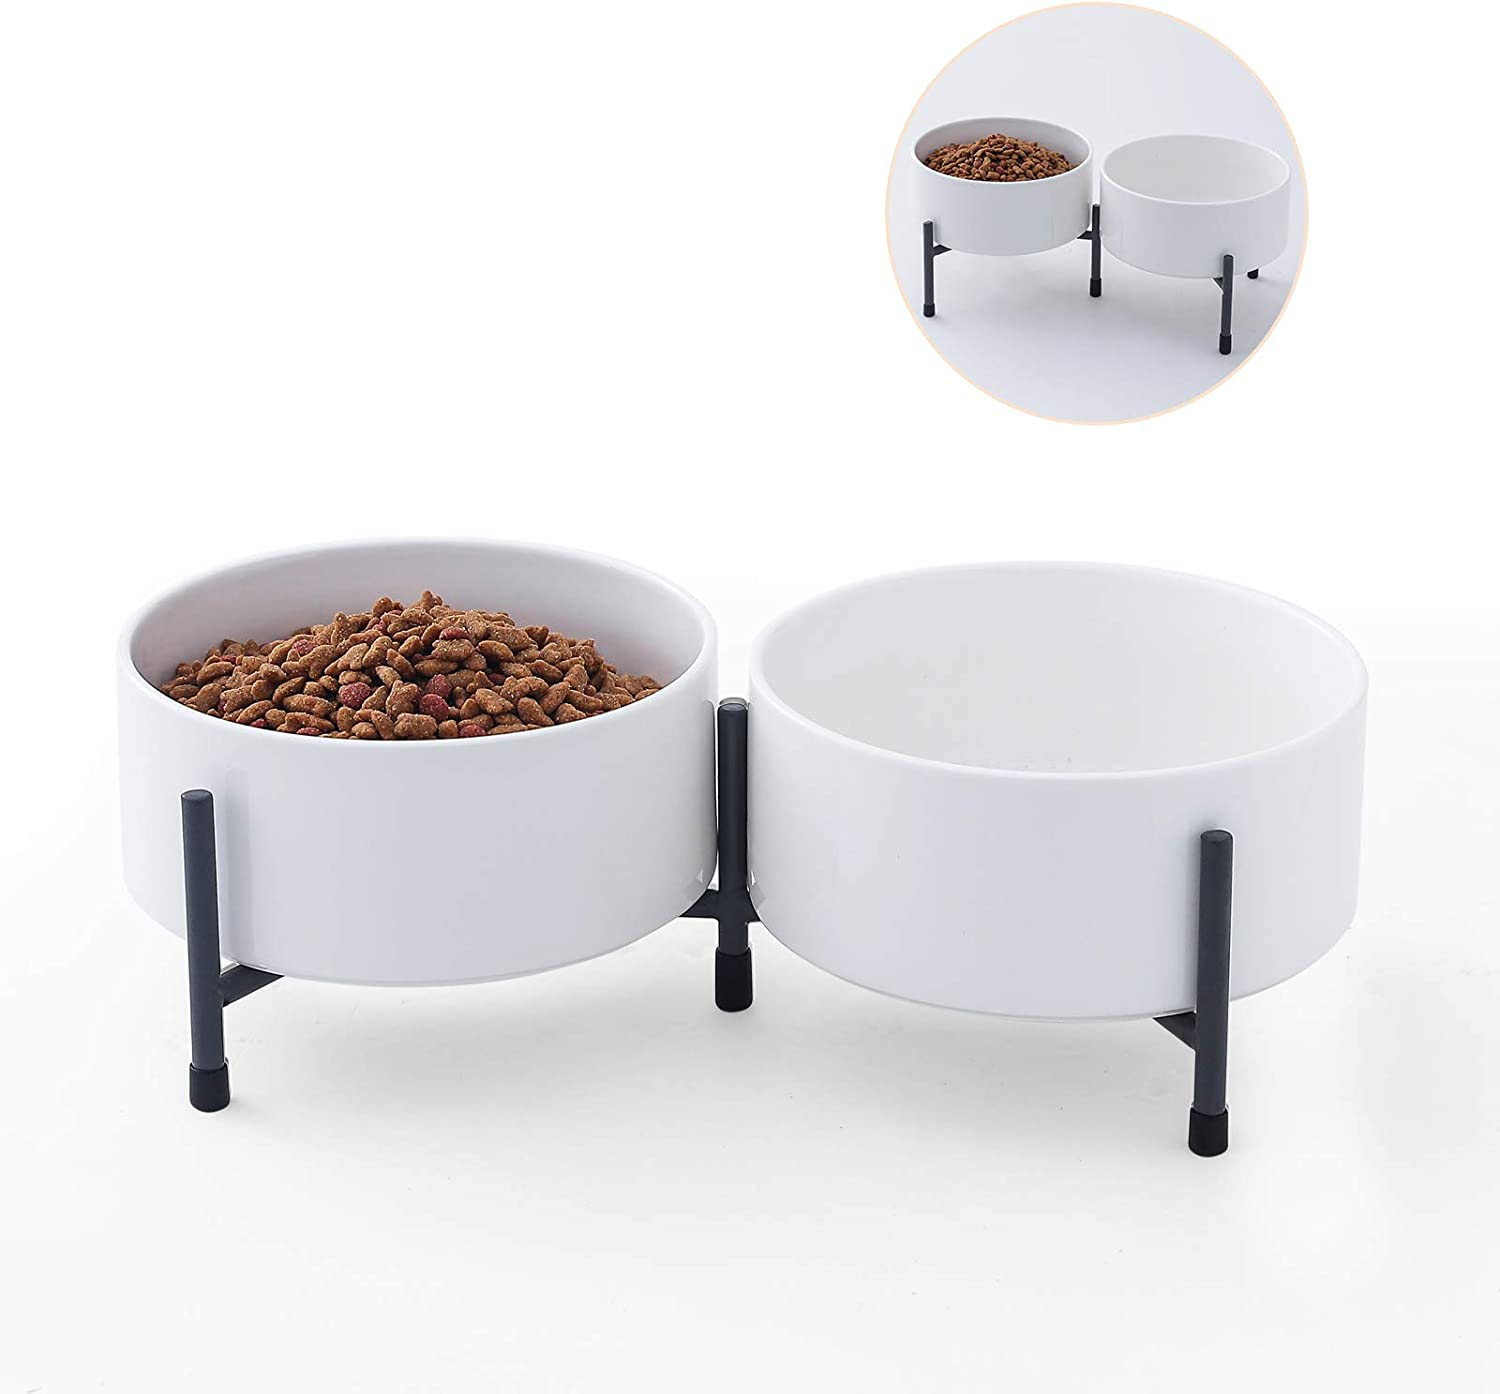 6 Inch Ceramic Cat Dog Bowl Dish Sets with Metal Stand for Food and Water - 32 Ounces Pet Food Water Feeder Cats Small Dogs - White - Set of 2